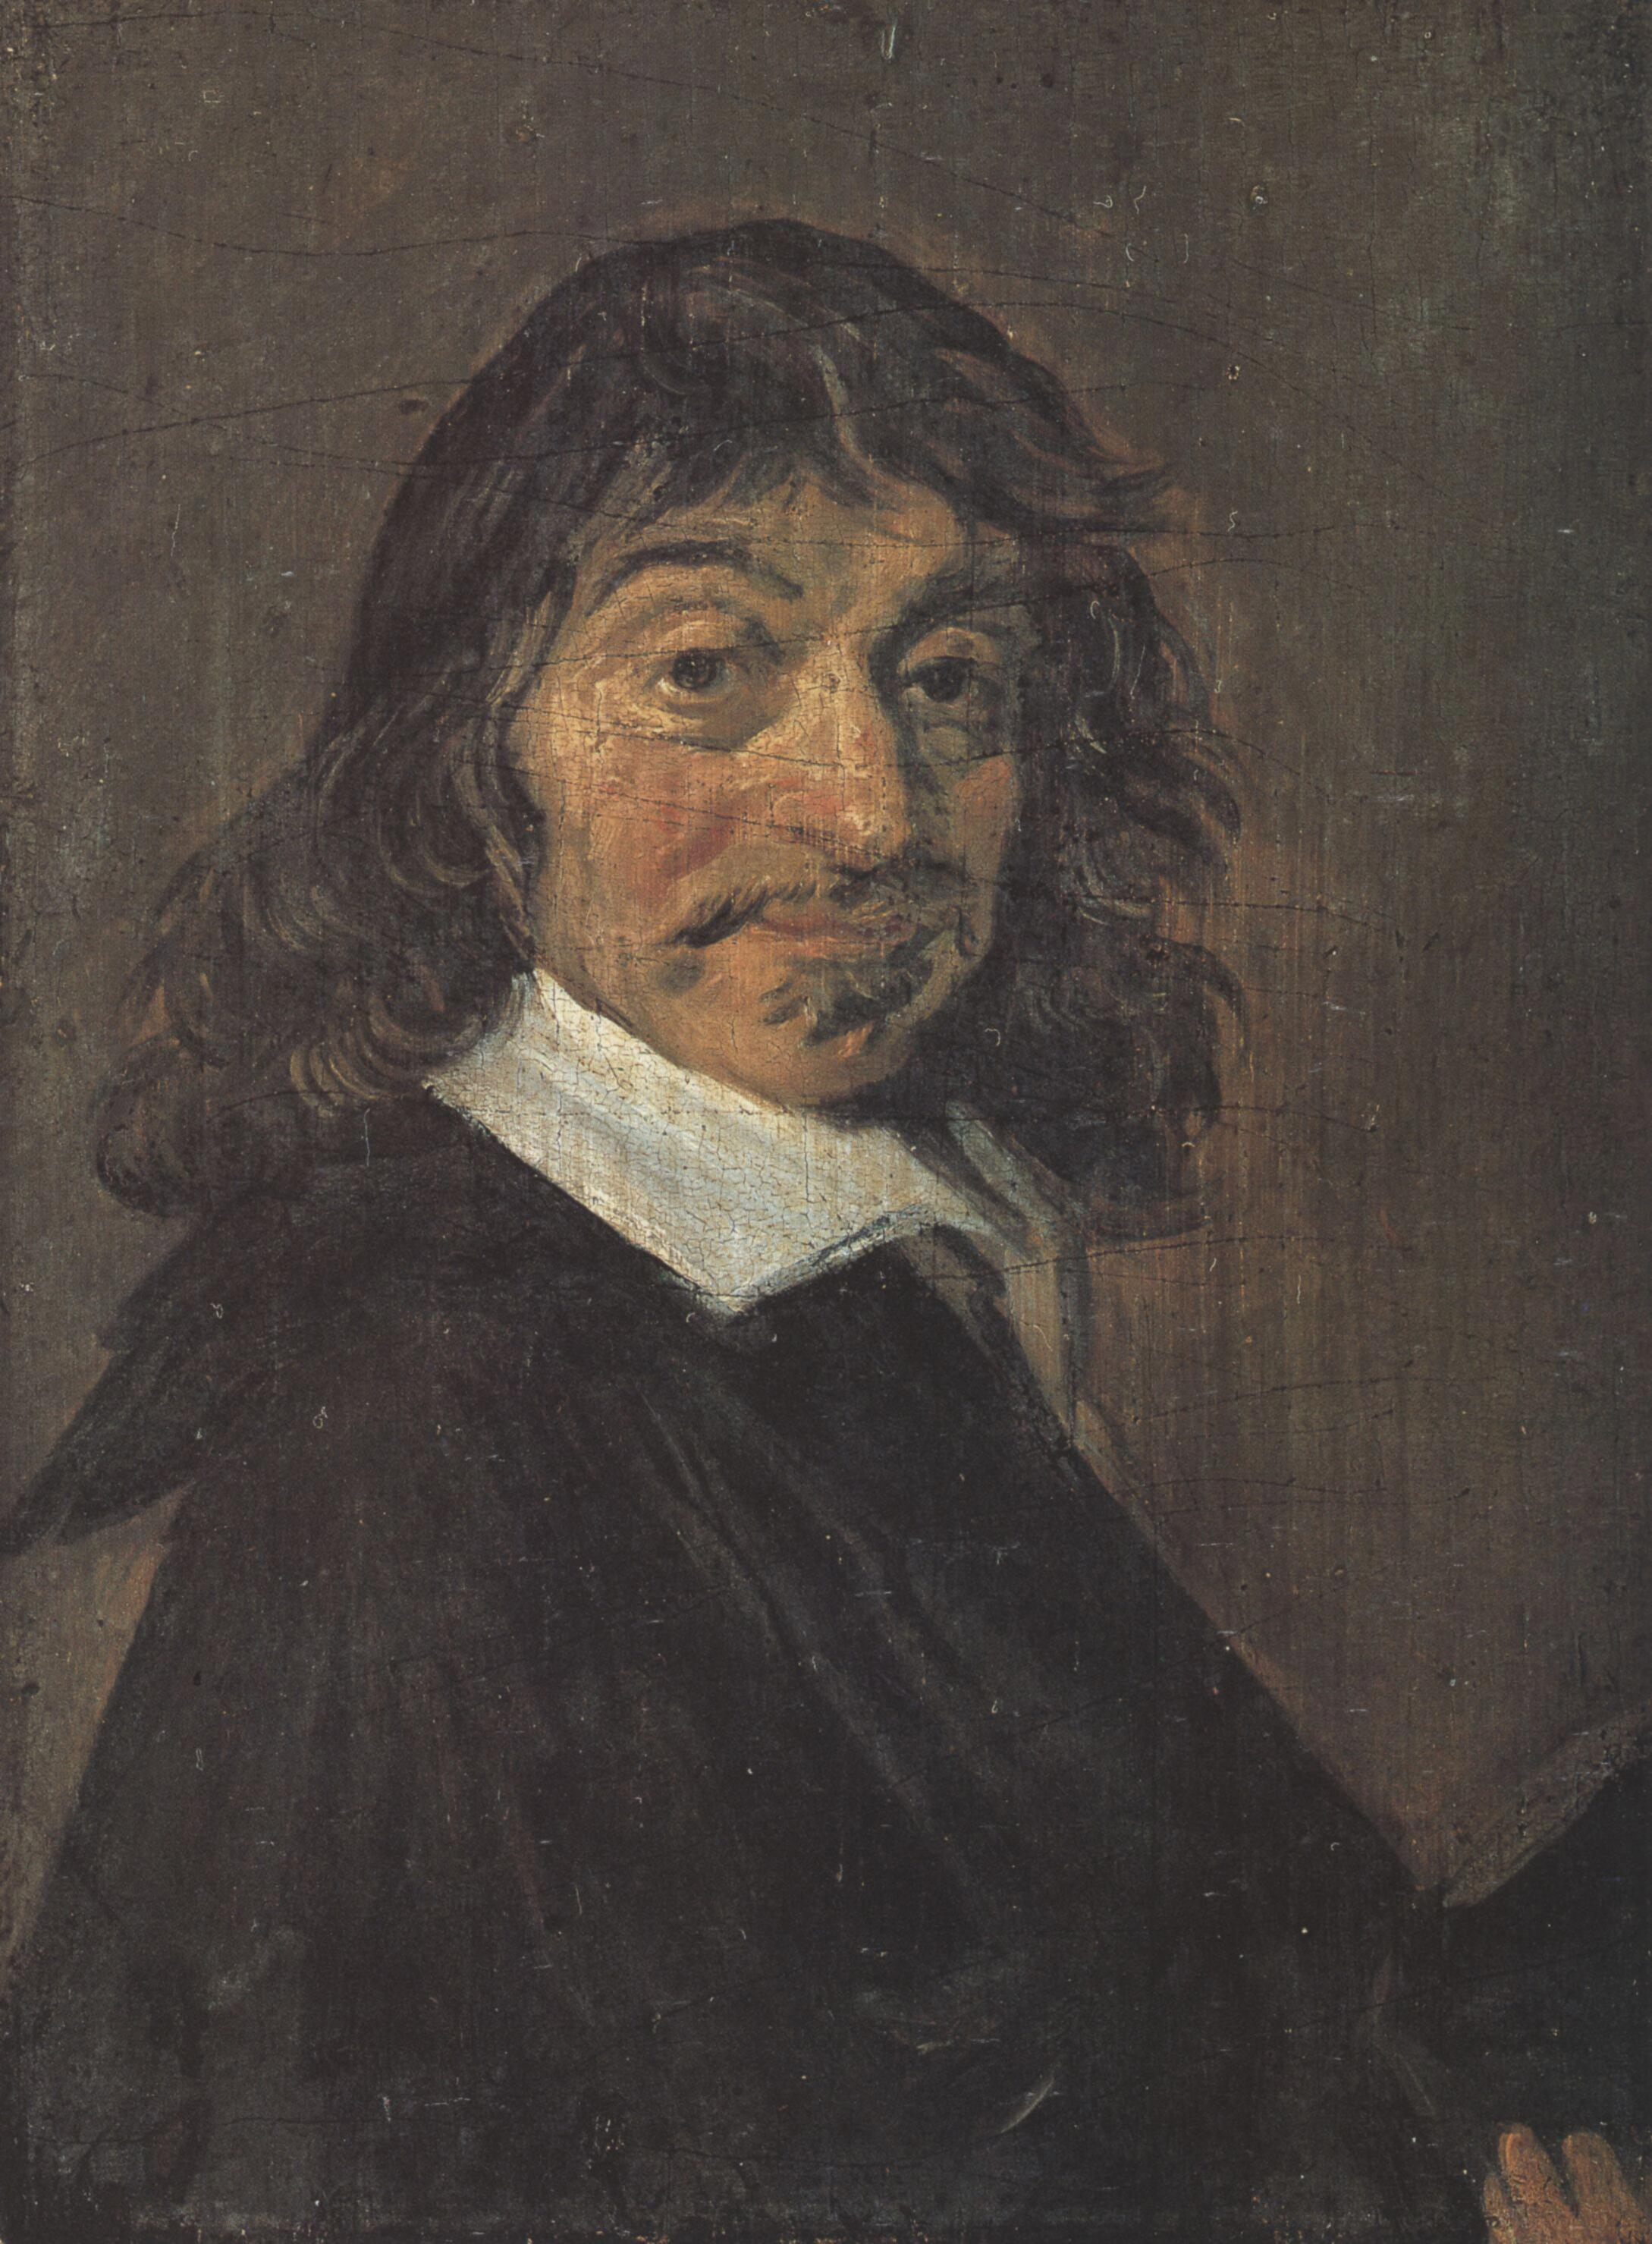 Portrait Of A Pretty 15 Year Old Girl With Her Arms Raised: File:Frans Hals, Portrait Of René Descartes.jpg